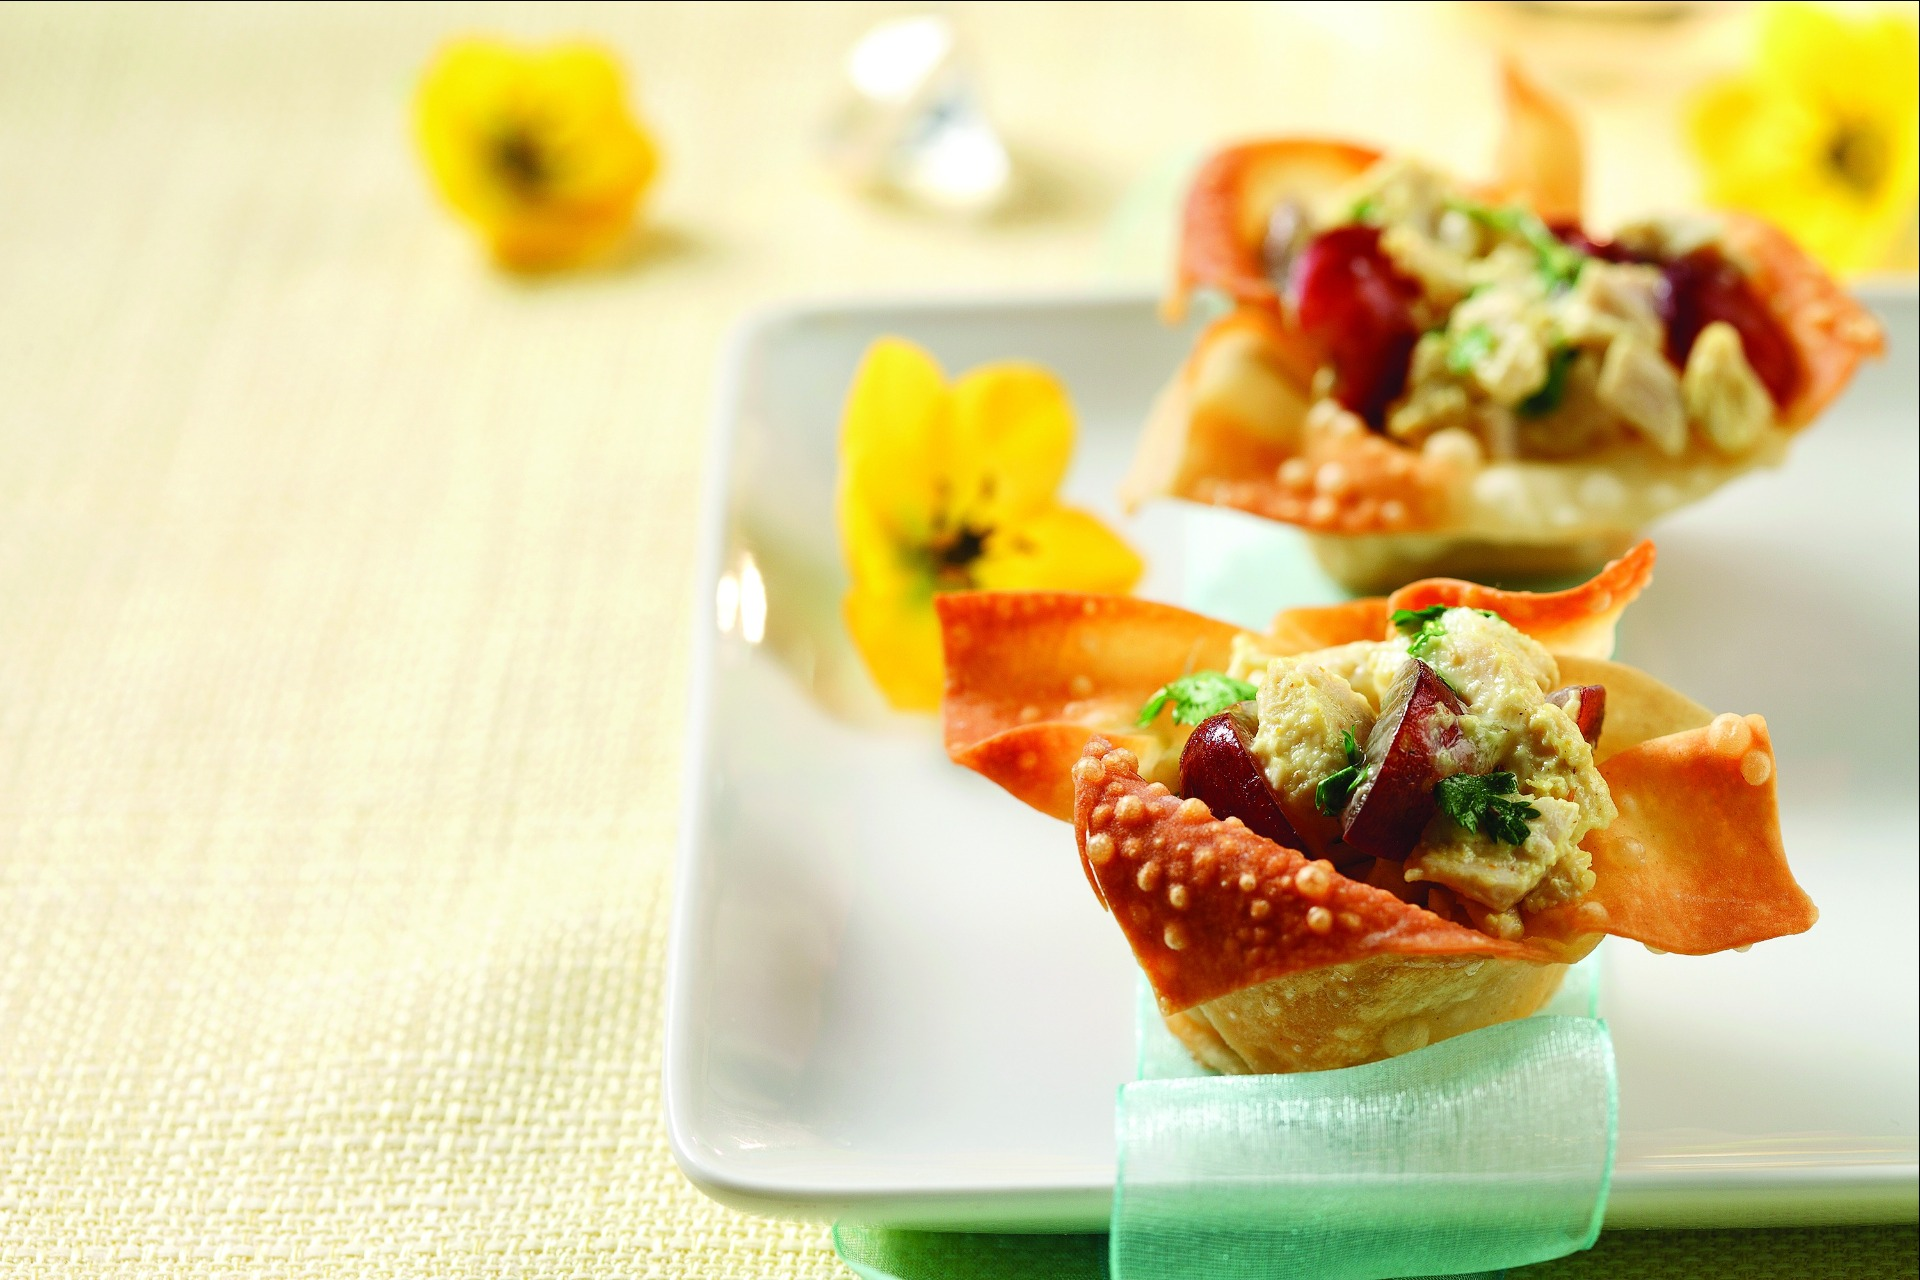 Curried chicken salad in wonton cups sitting on white plate with yellow flowers